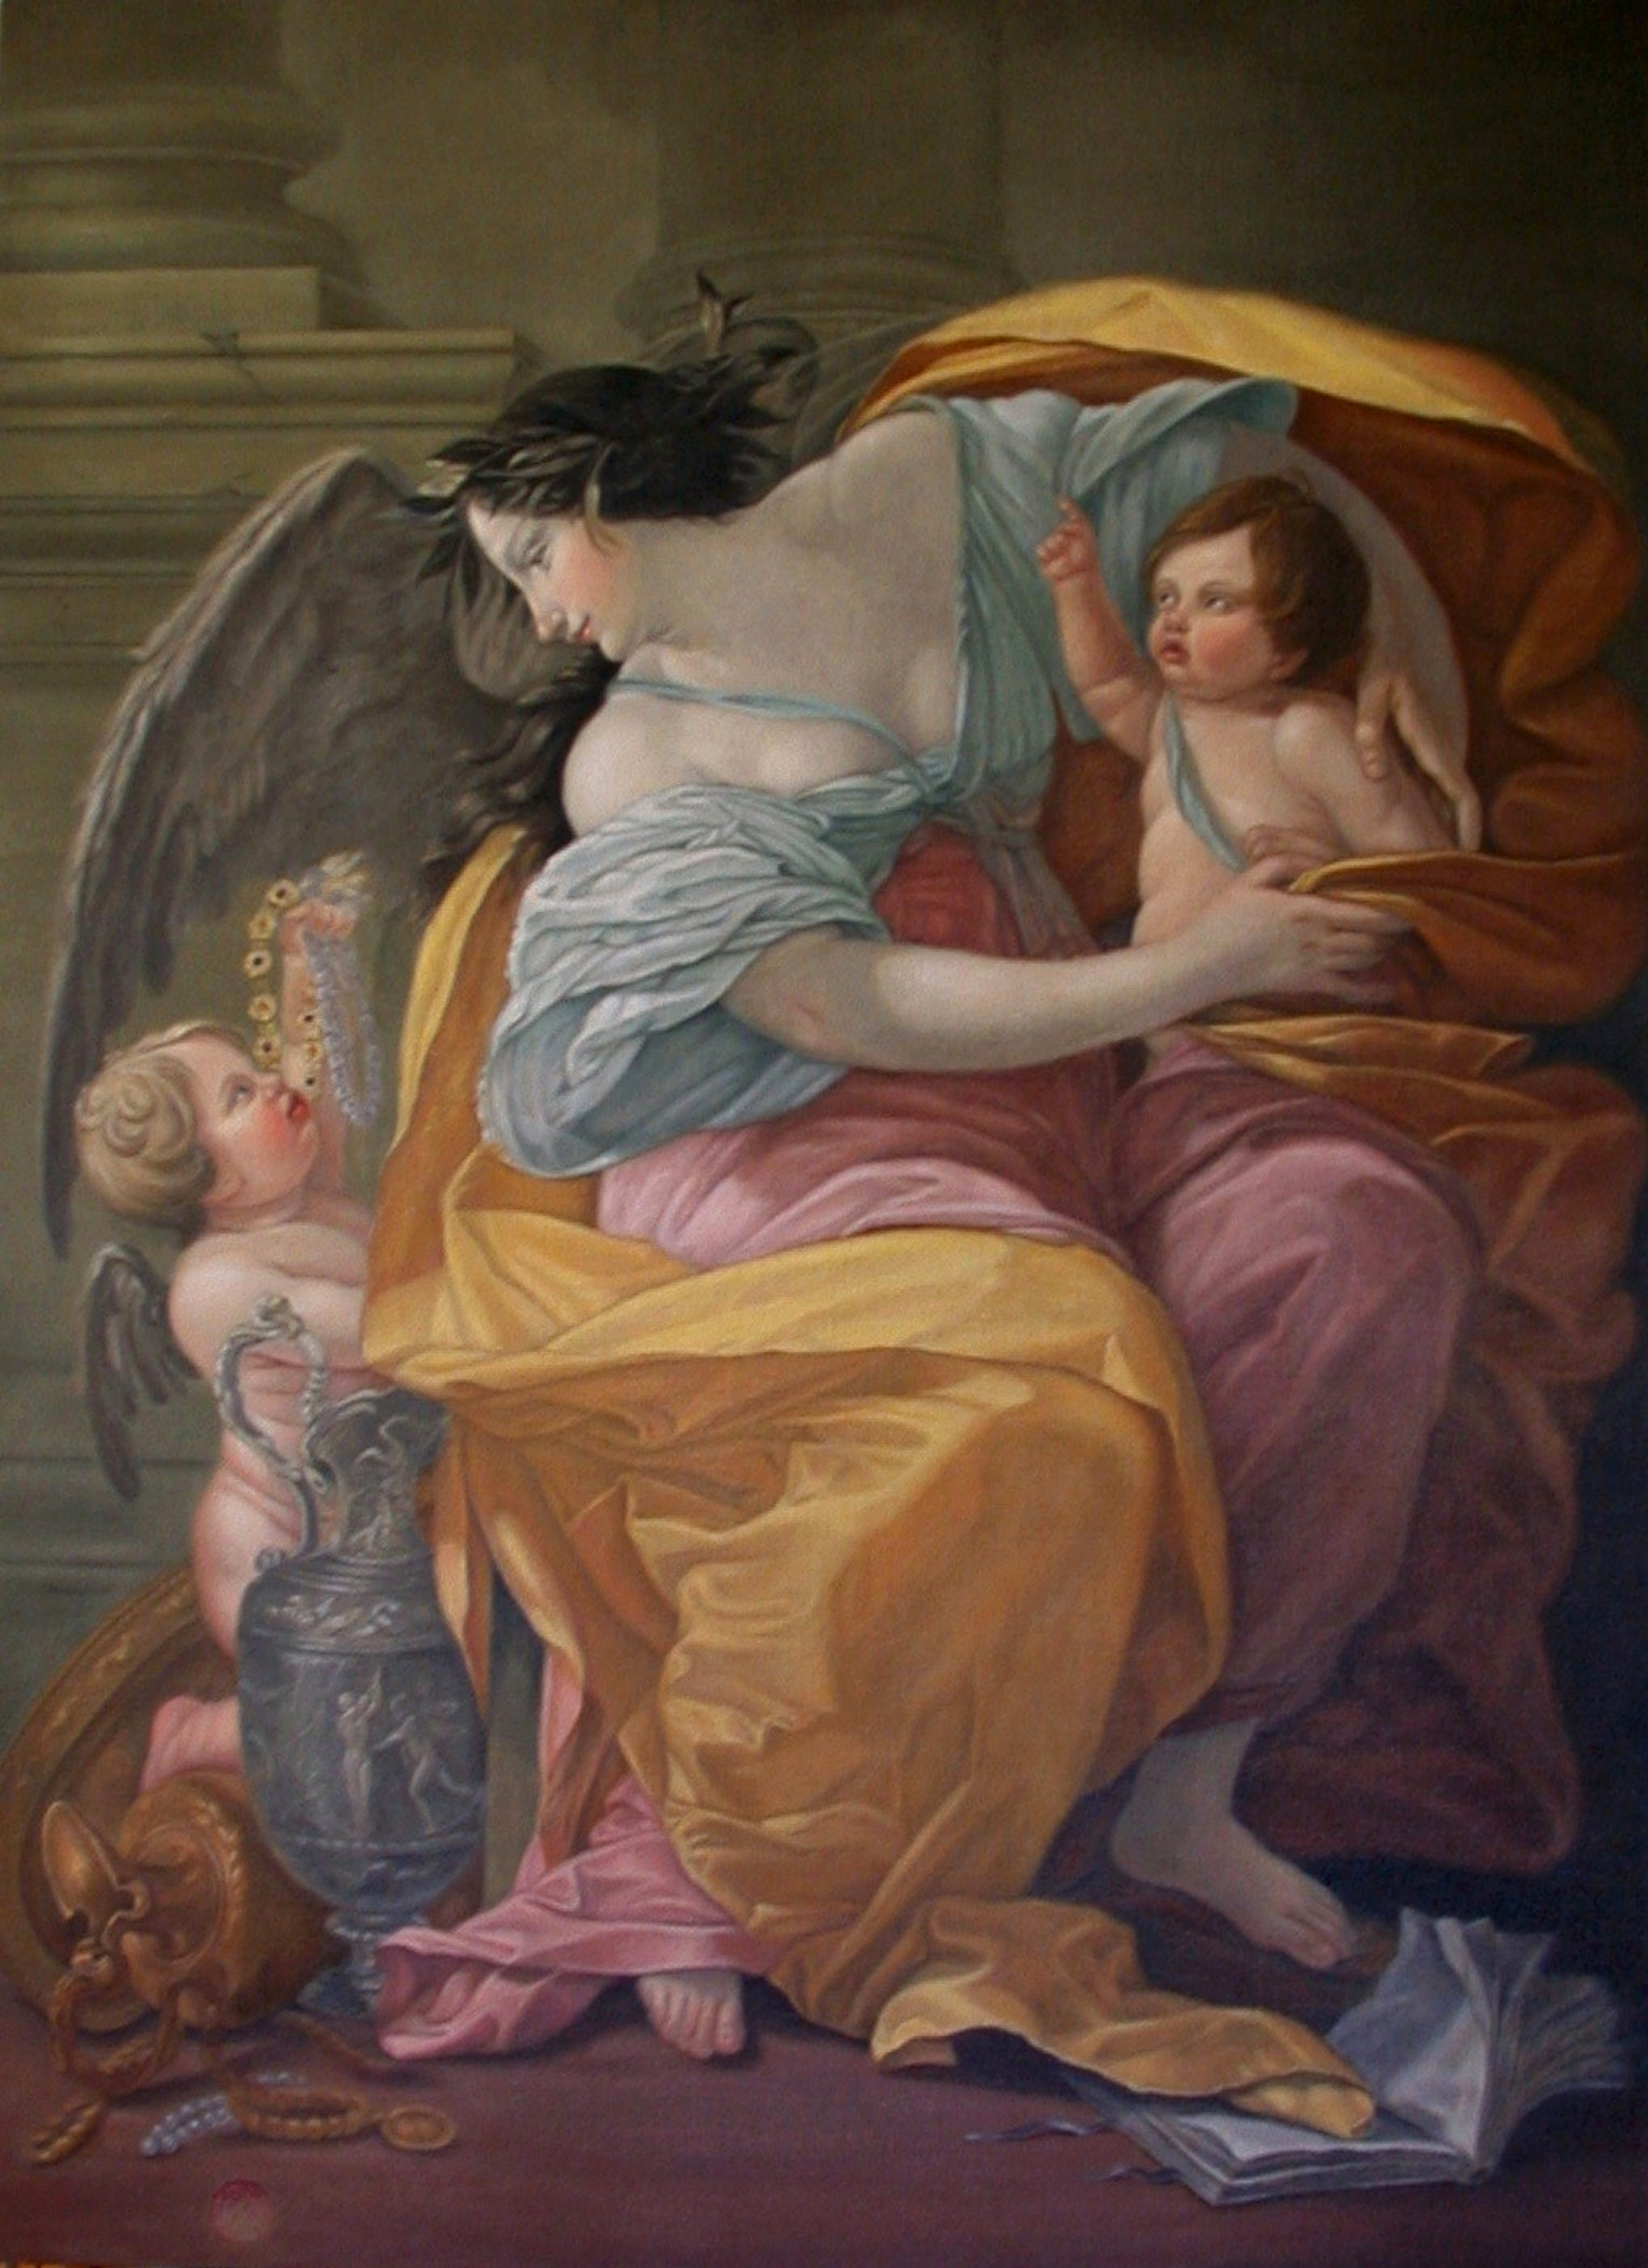 "Allegory of Wealth Arrowood after Simon Vouet 2004 Oil on Canvas 44"" x 32"" Exhibited October 5th-28th, 2005 2nd Salon des Copistes du Louvre La Mairie du 6th, Paris, France"